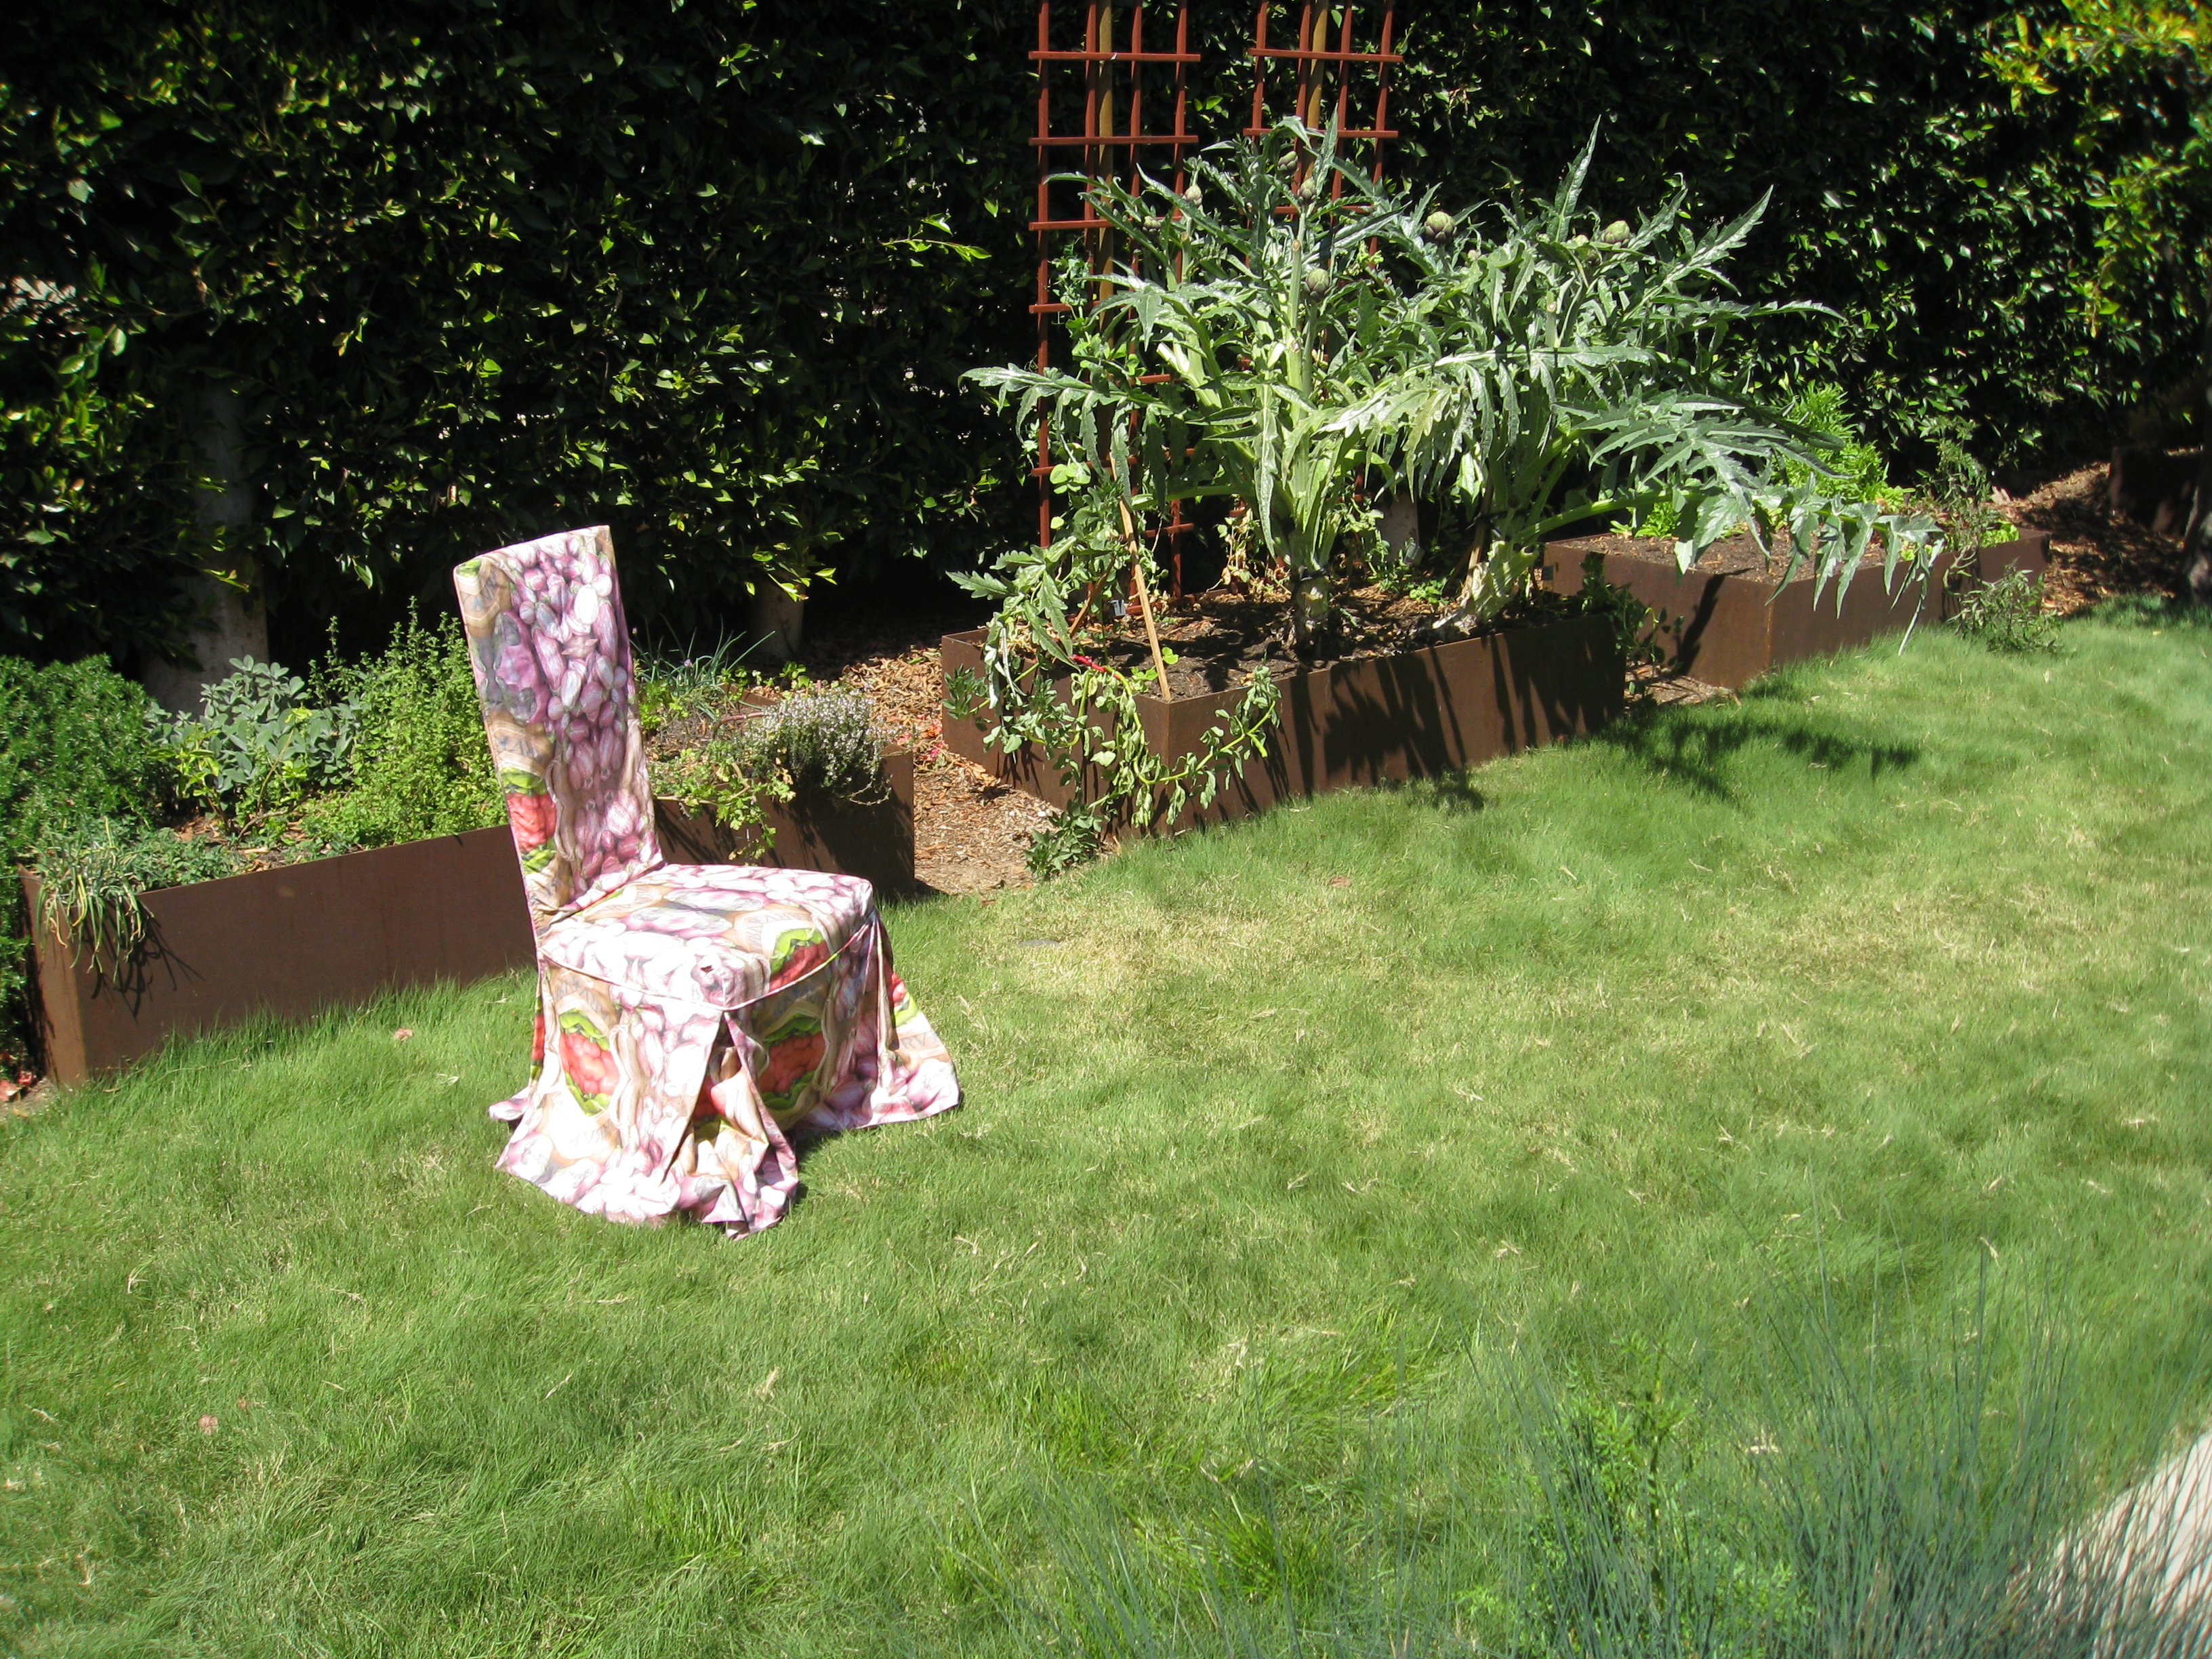 Need a lawn alternative? Buffalo grass works in many circumstances